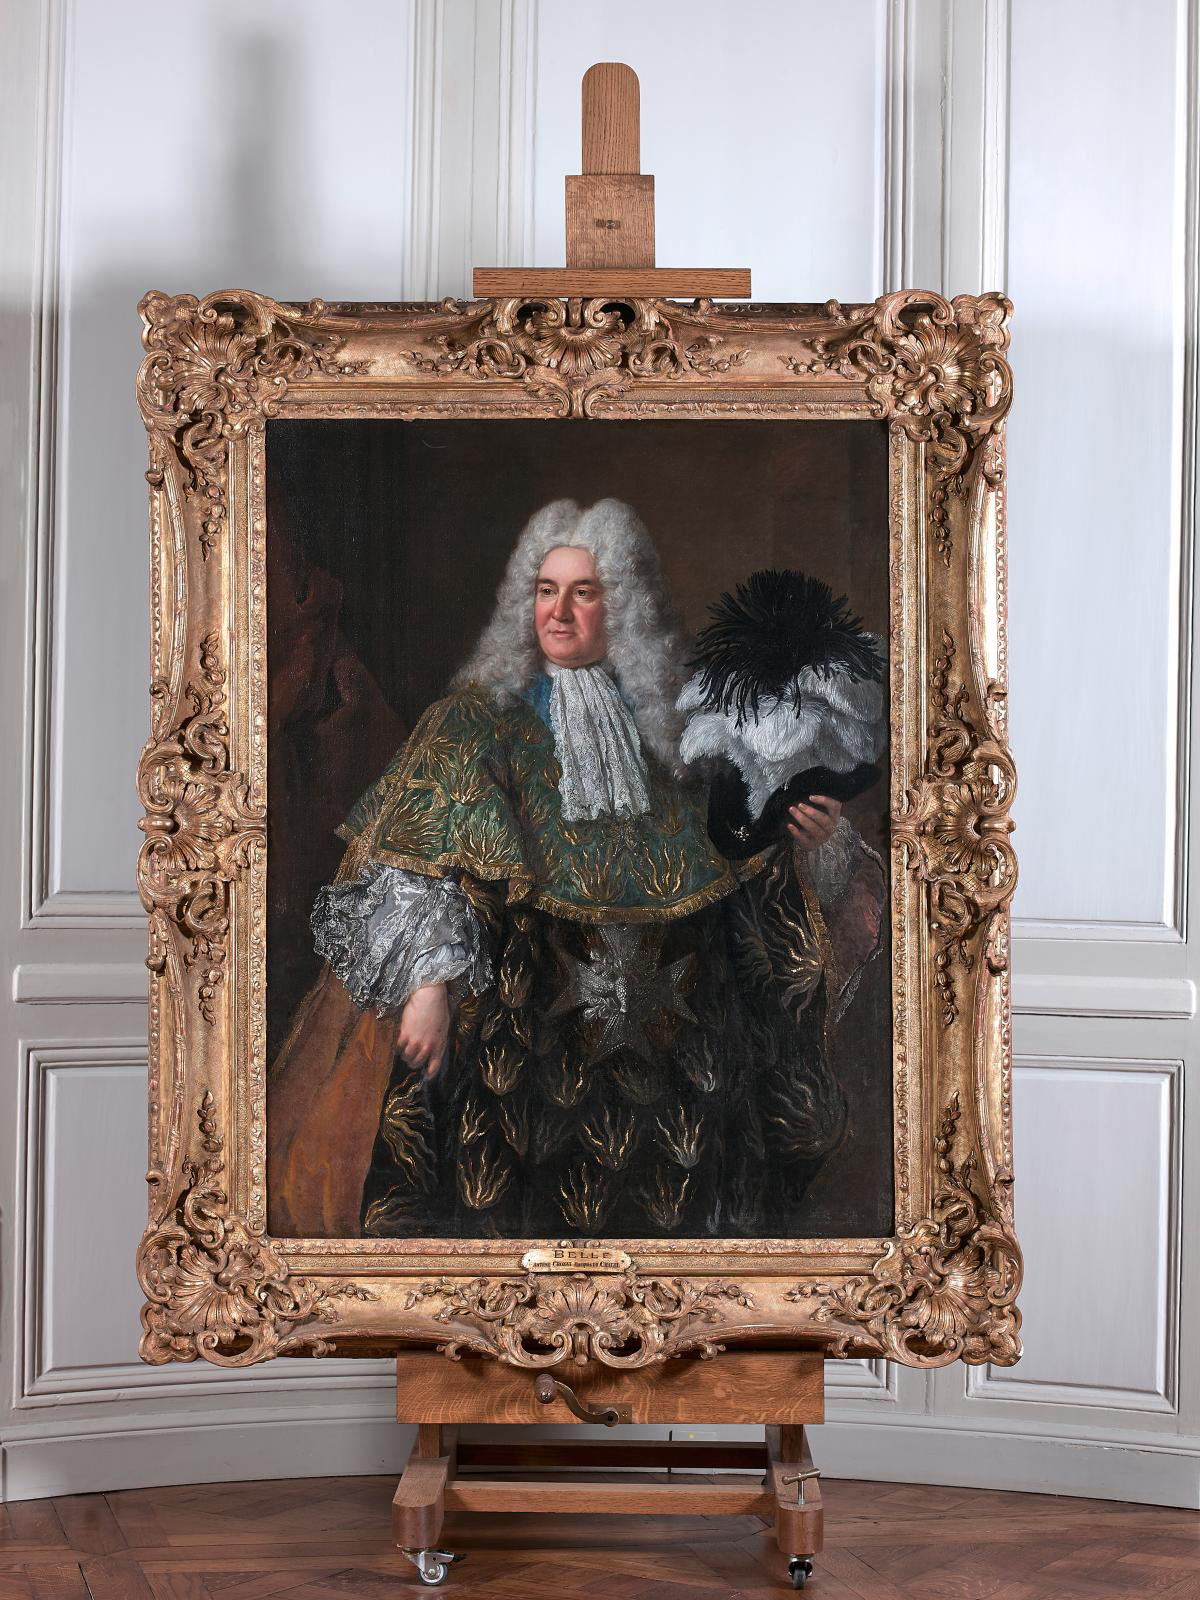 Alexis-Simon Belle (1674-1734), Portrait of Antoine Crozat, Marquis du Châtel, in the dress of the Order of the Holy Spirit, of which he w